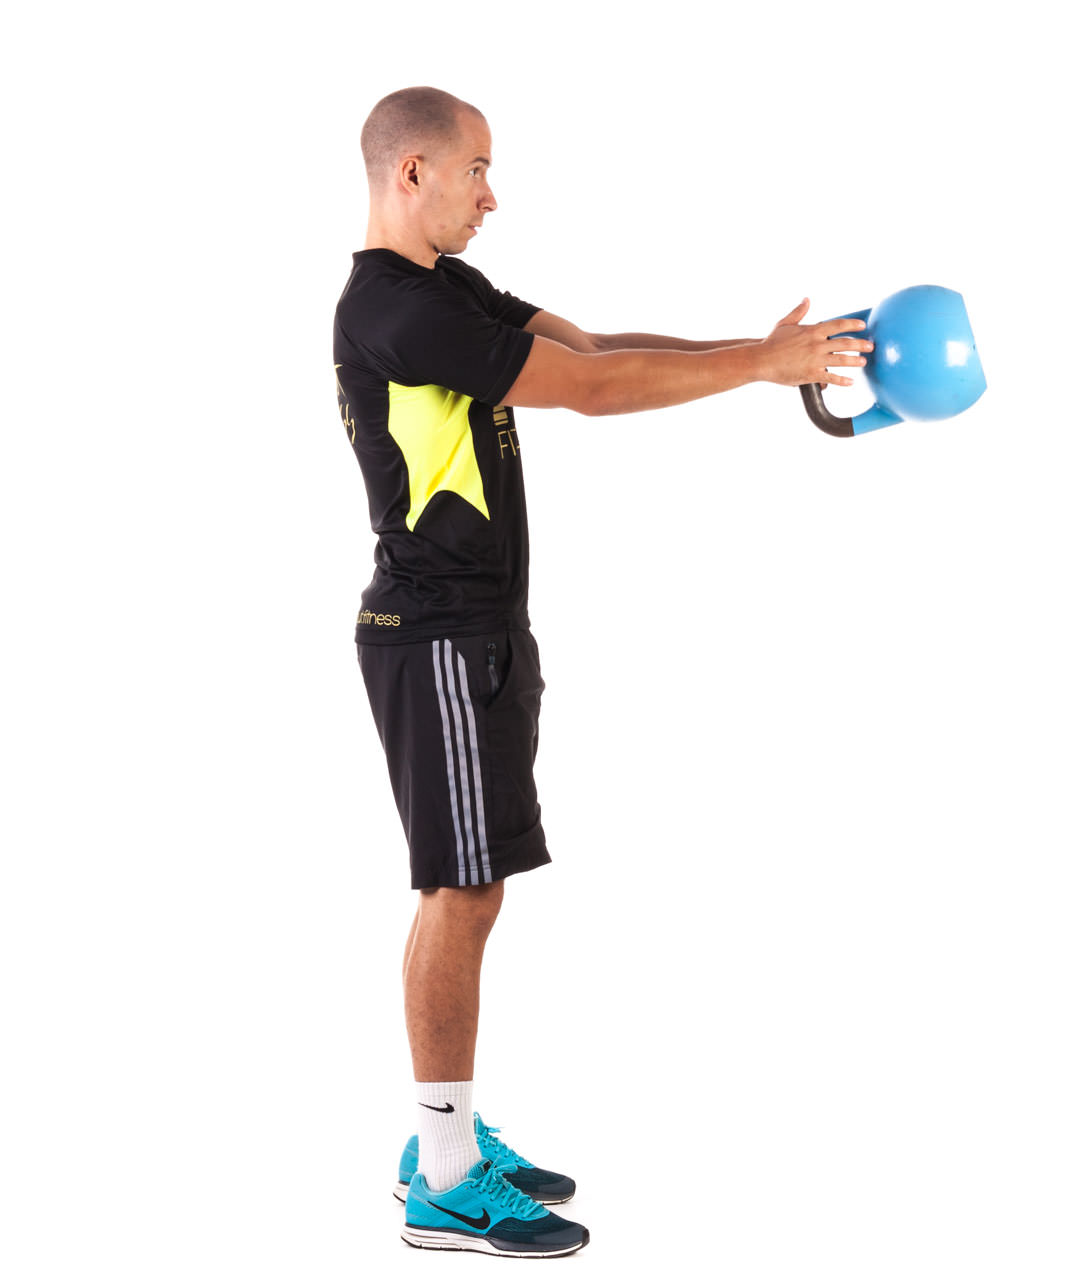 Alternating Kettlebell Swing frame #11